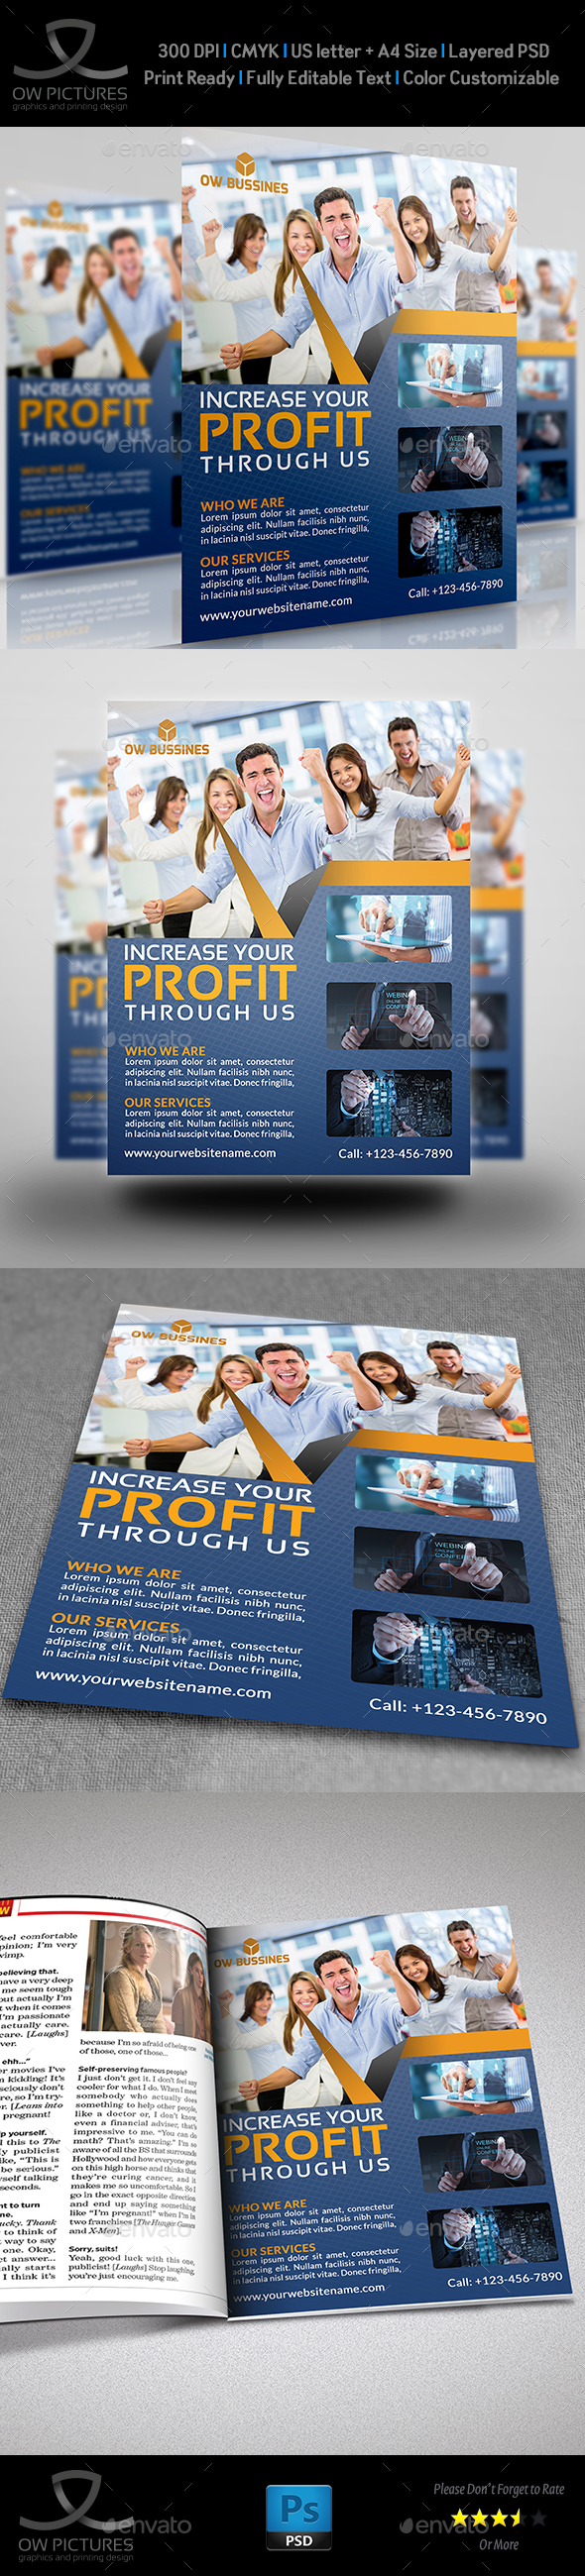 Corporate Business Flyer Template Vol.21 - Corporate Flyers